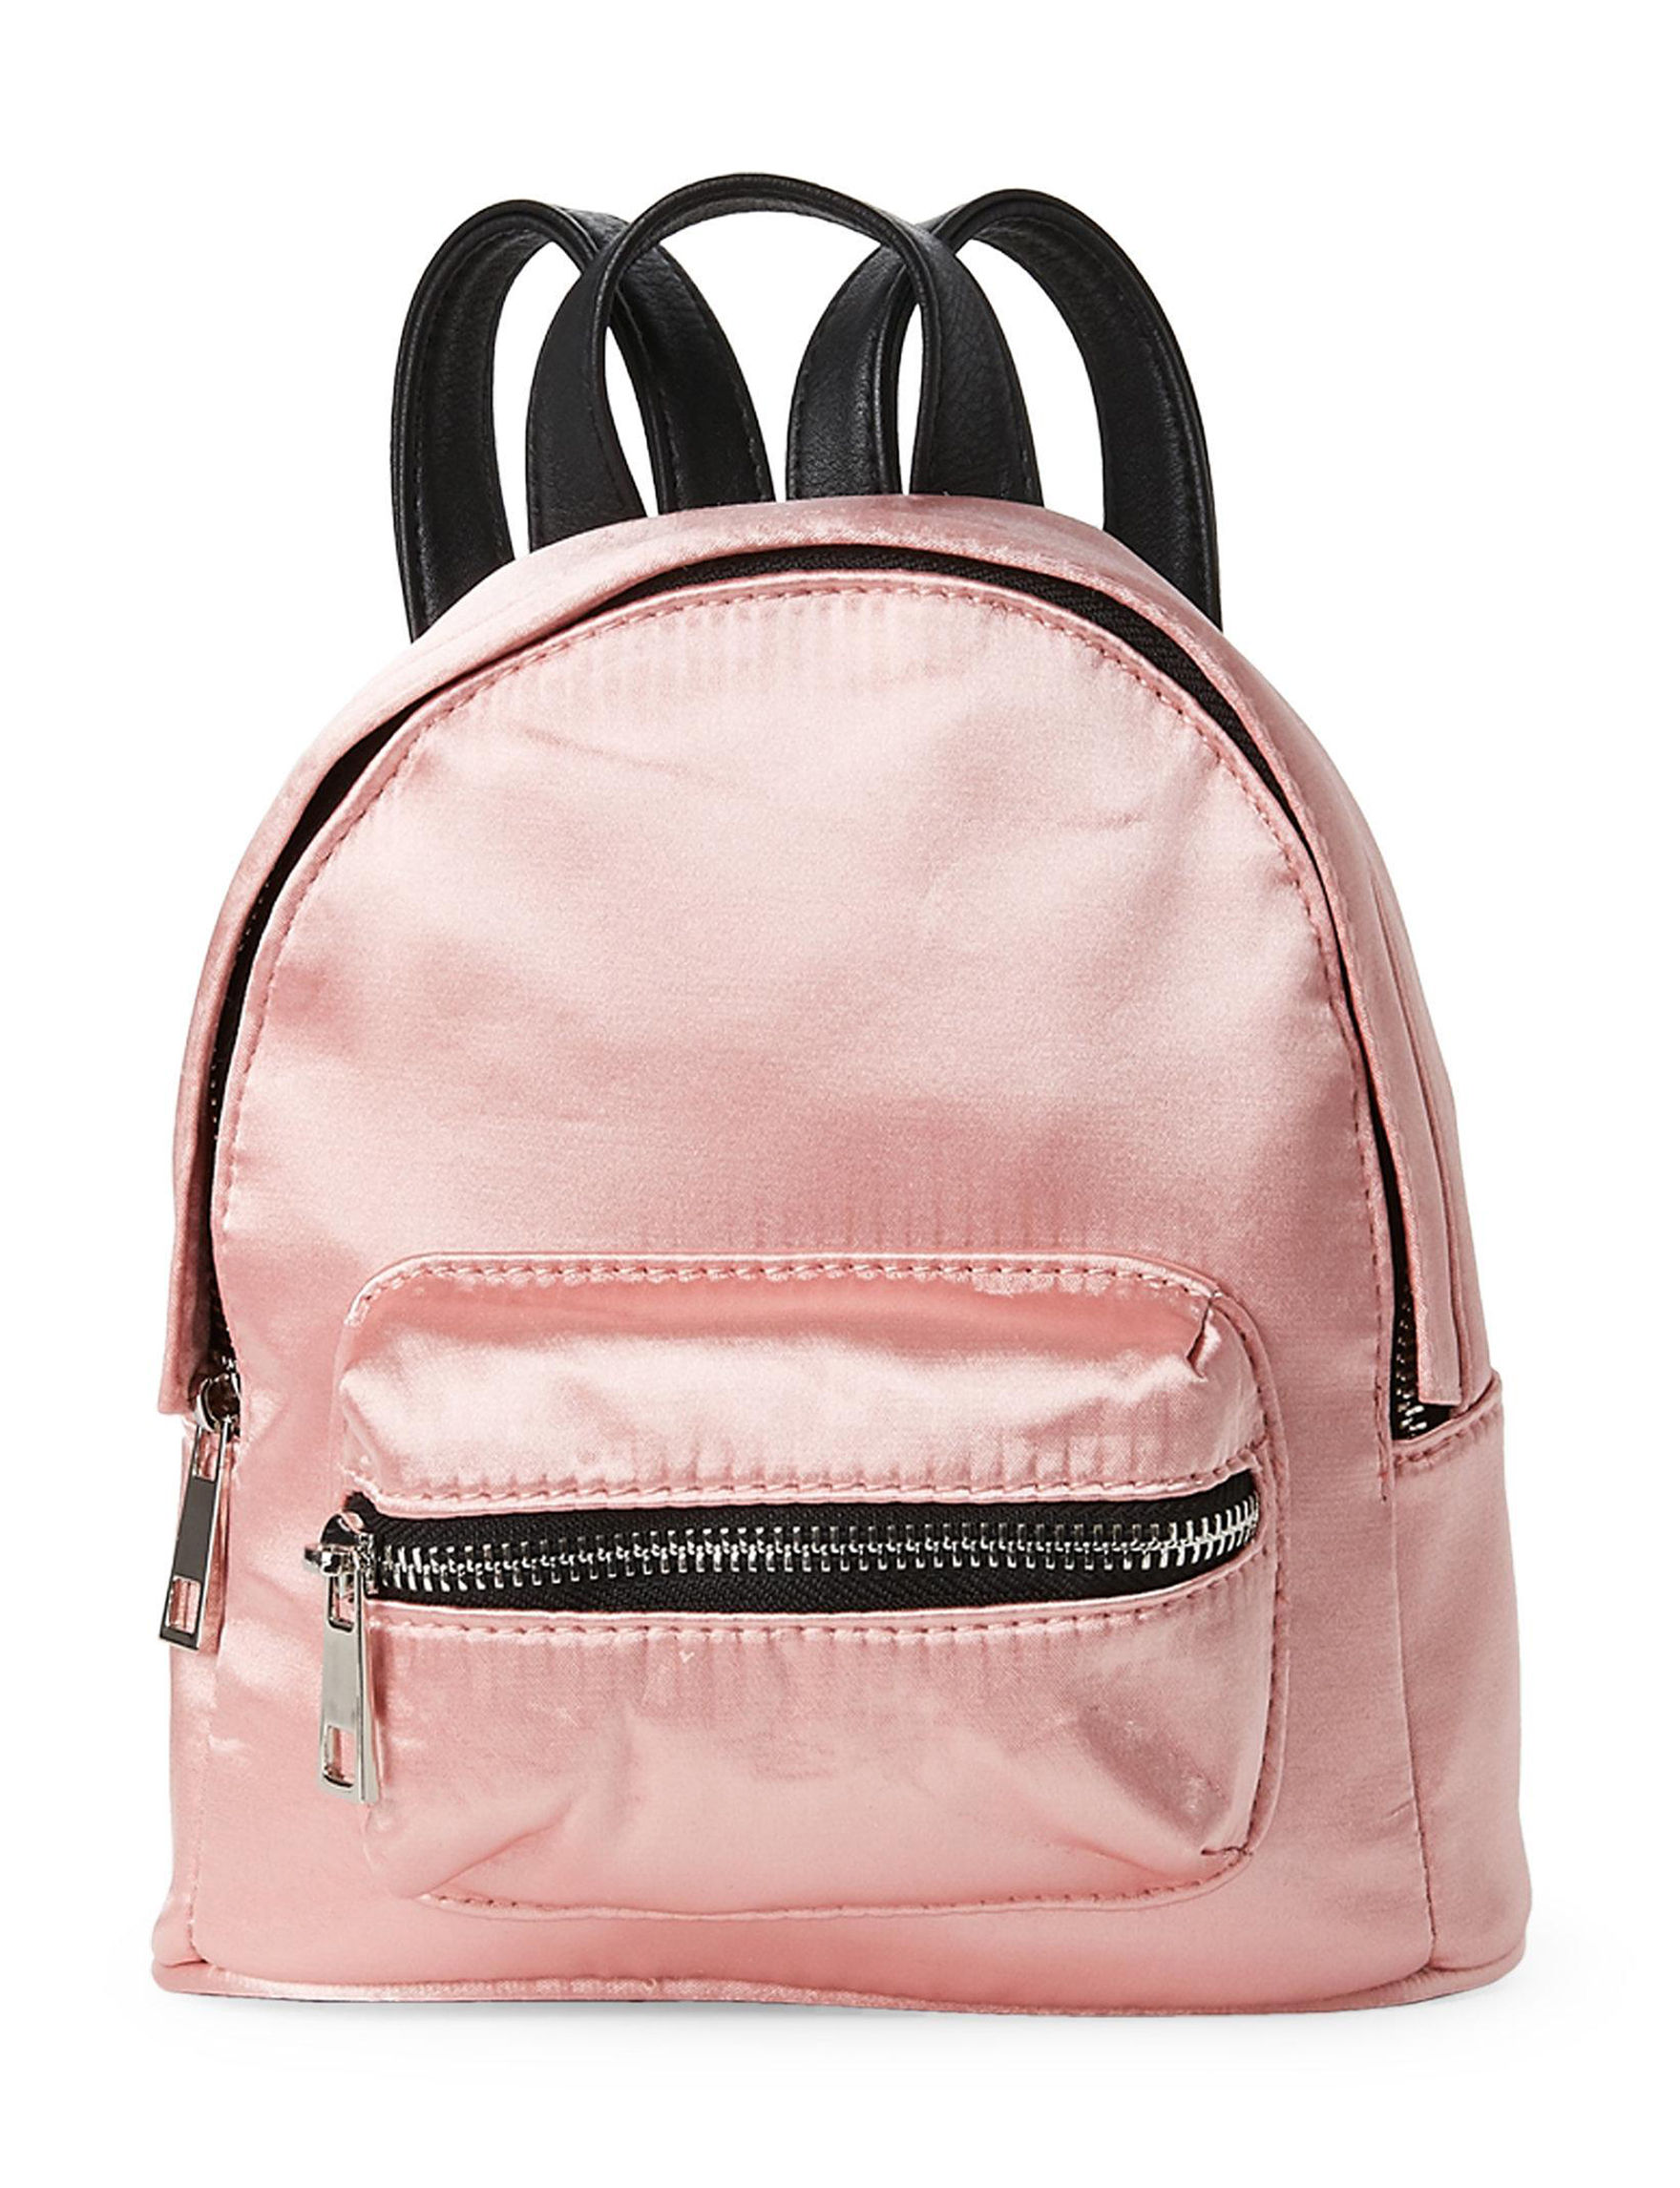 Madden Girl Satin Backpack | Stage Stores